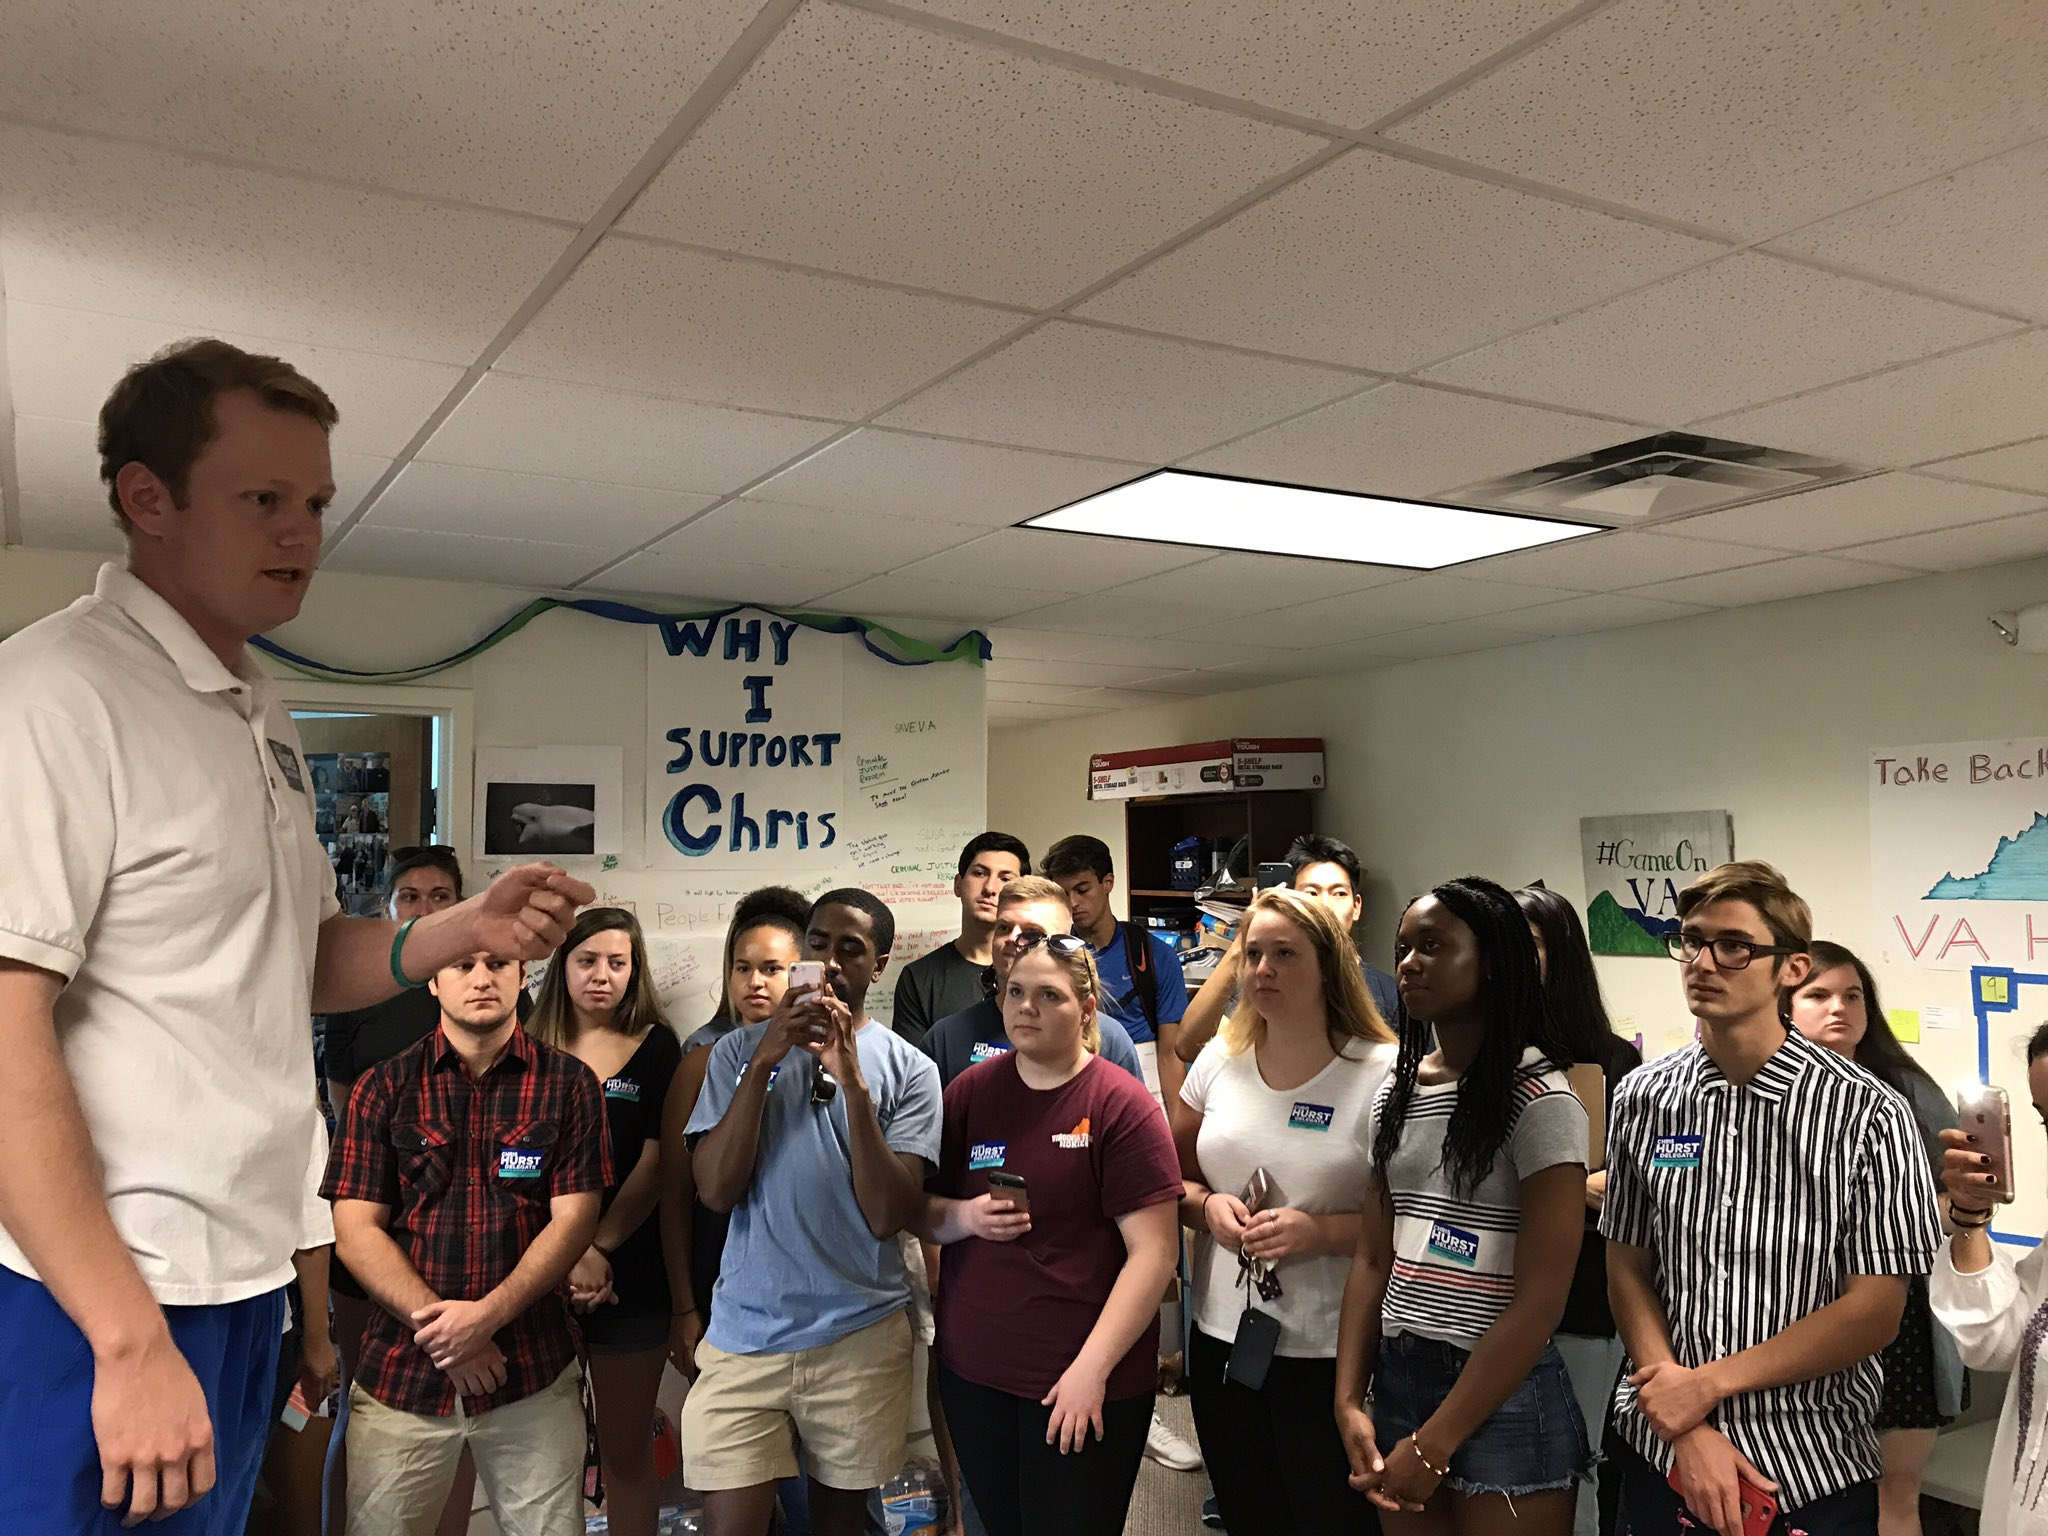 Huge crowd and energy for the @ChrisHurstVA canvass launch in Blacksburg! https://t.co/UzyDr2GJib